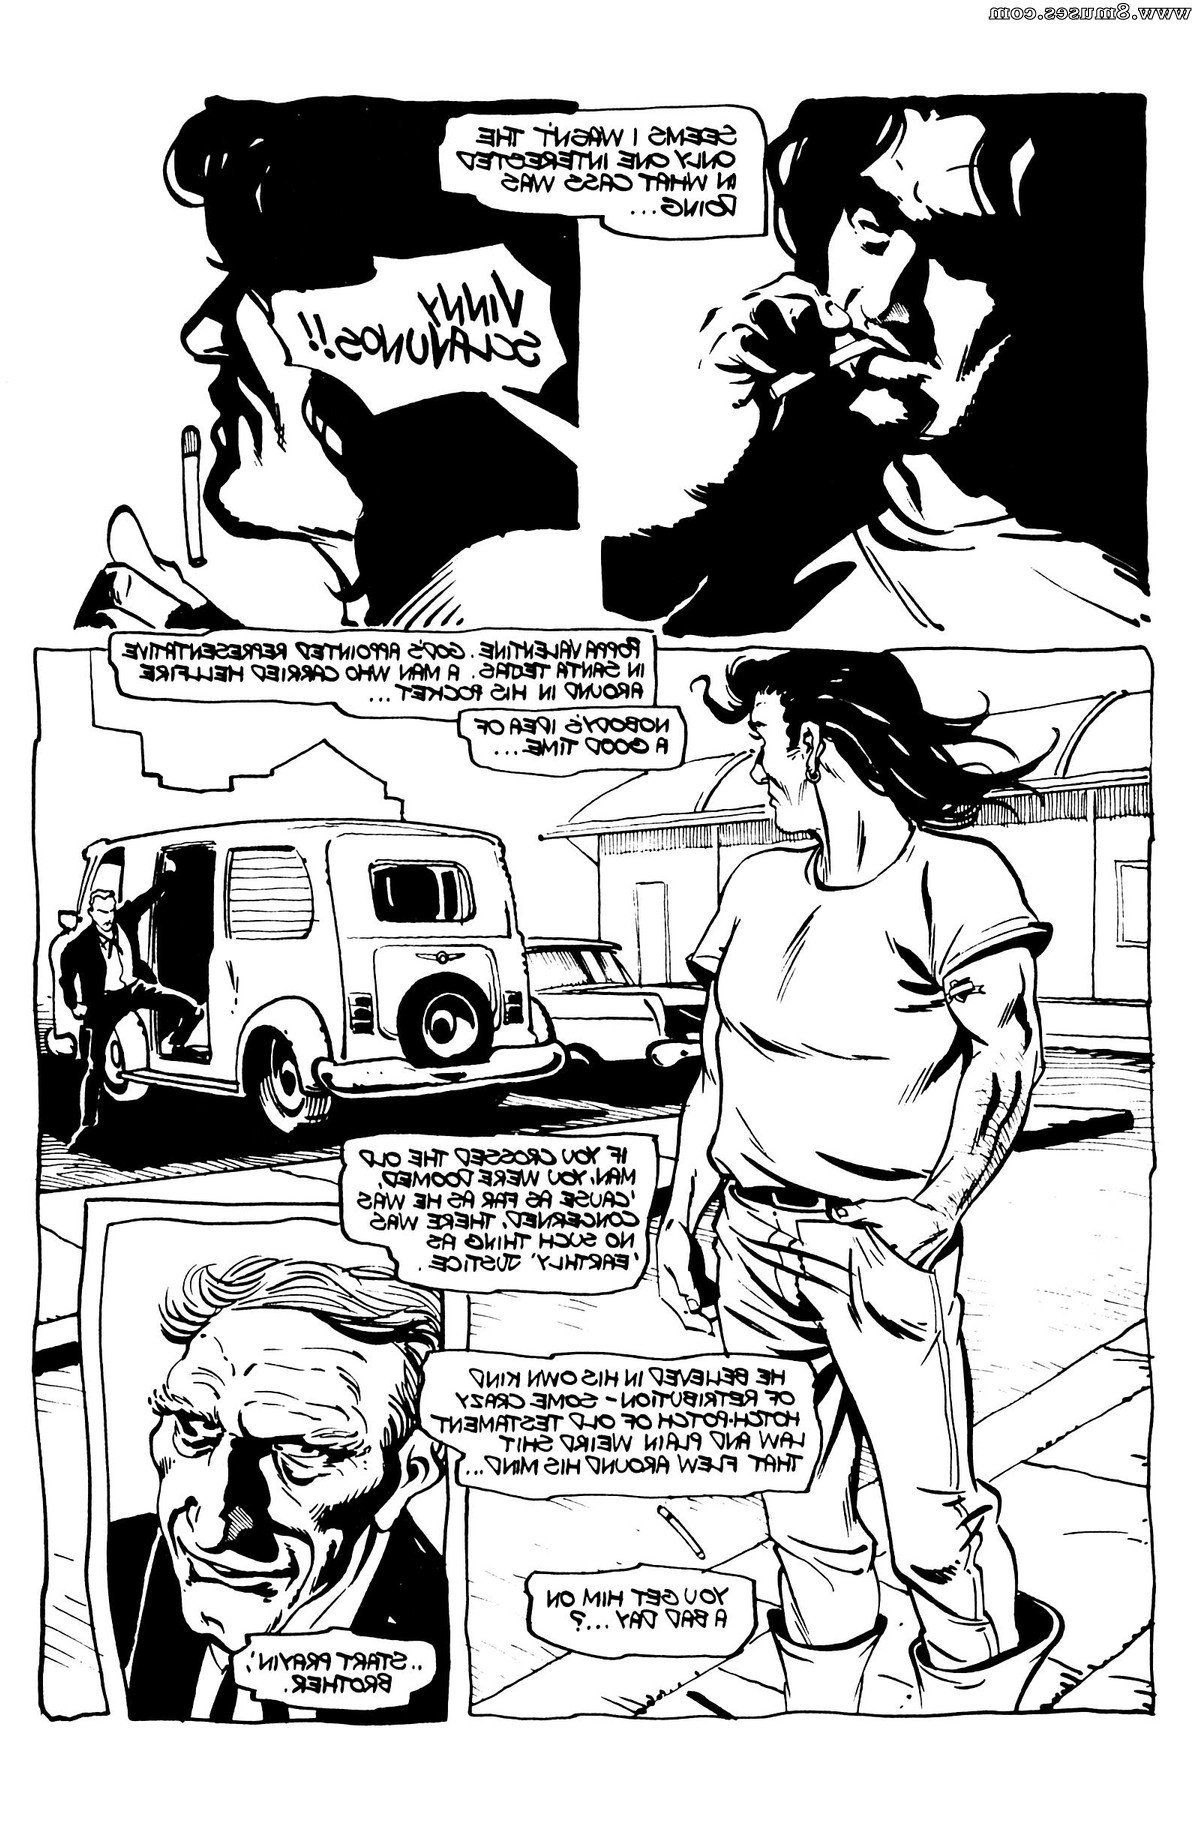 EROS-Comics/100-Degrees-In-The-Shade/Issue-1 100_Degrees_In_The_Shade_-_Issue_1_13.jpg